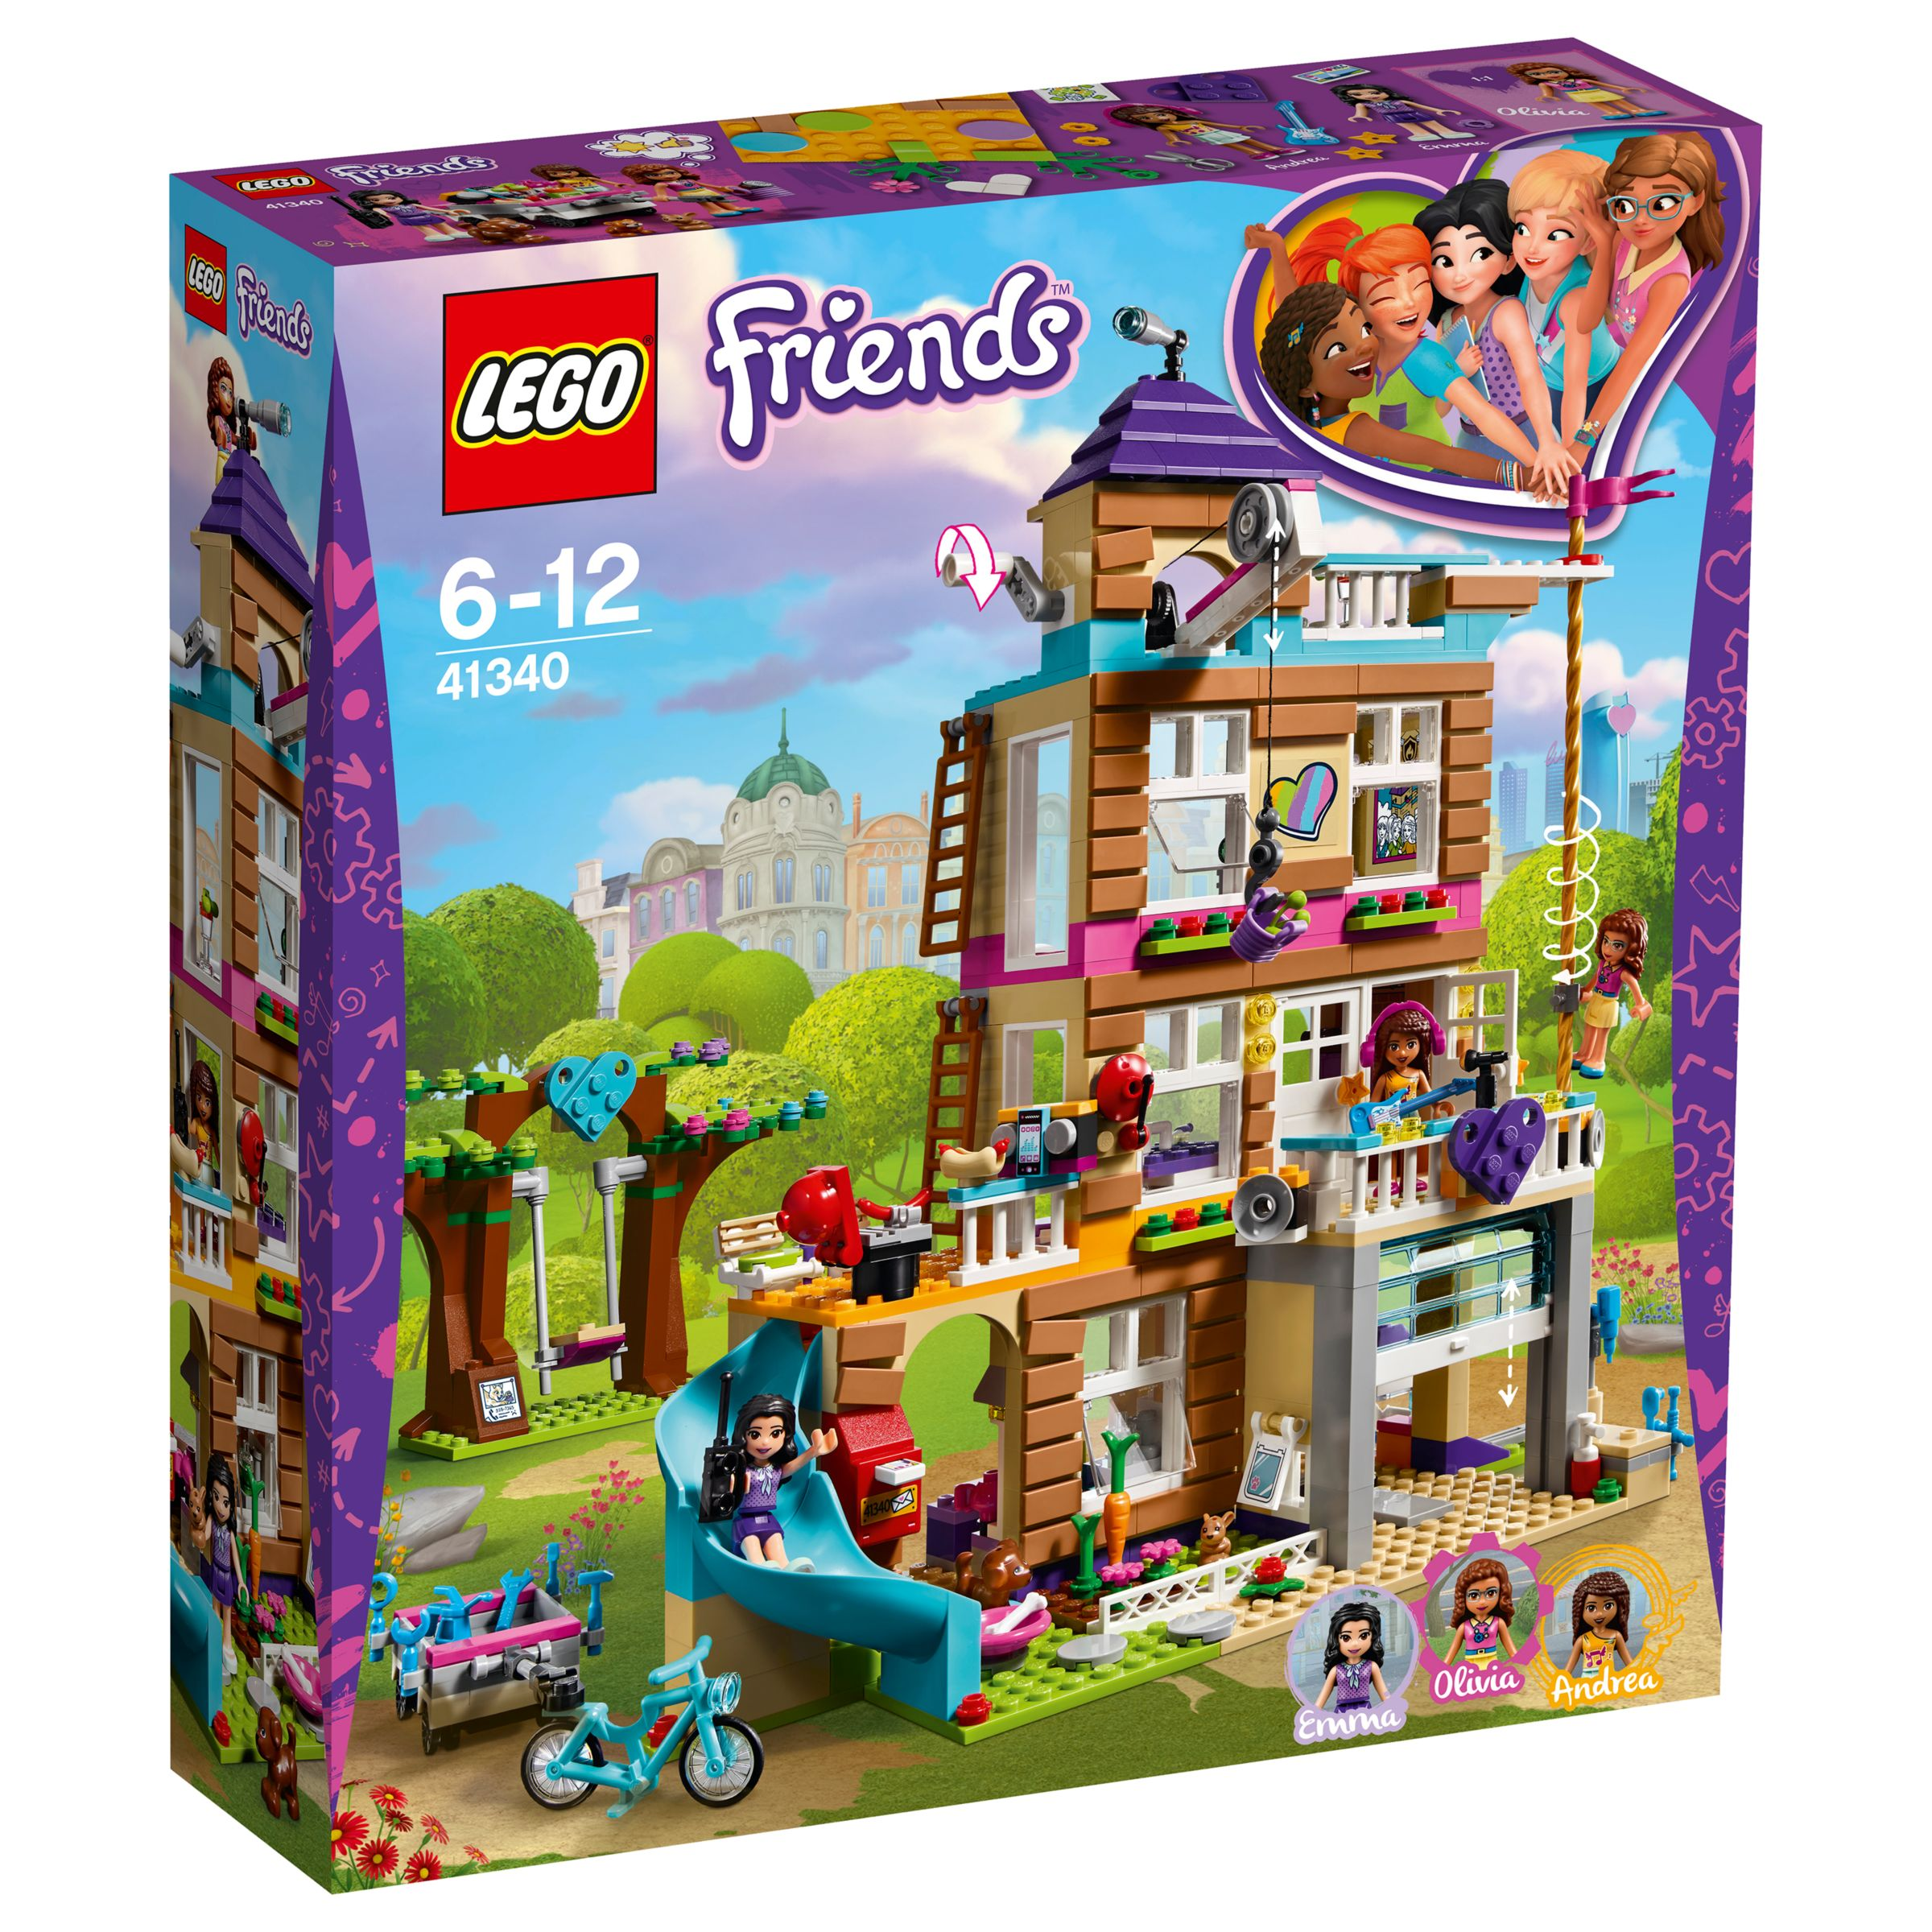 LEGO Friends Friendship House Bluewater